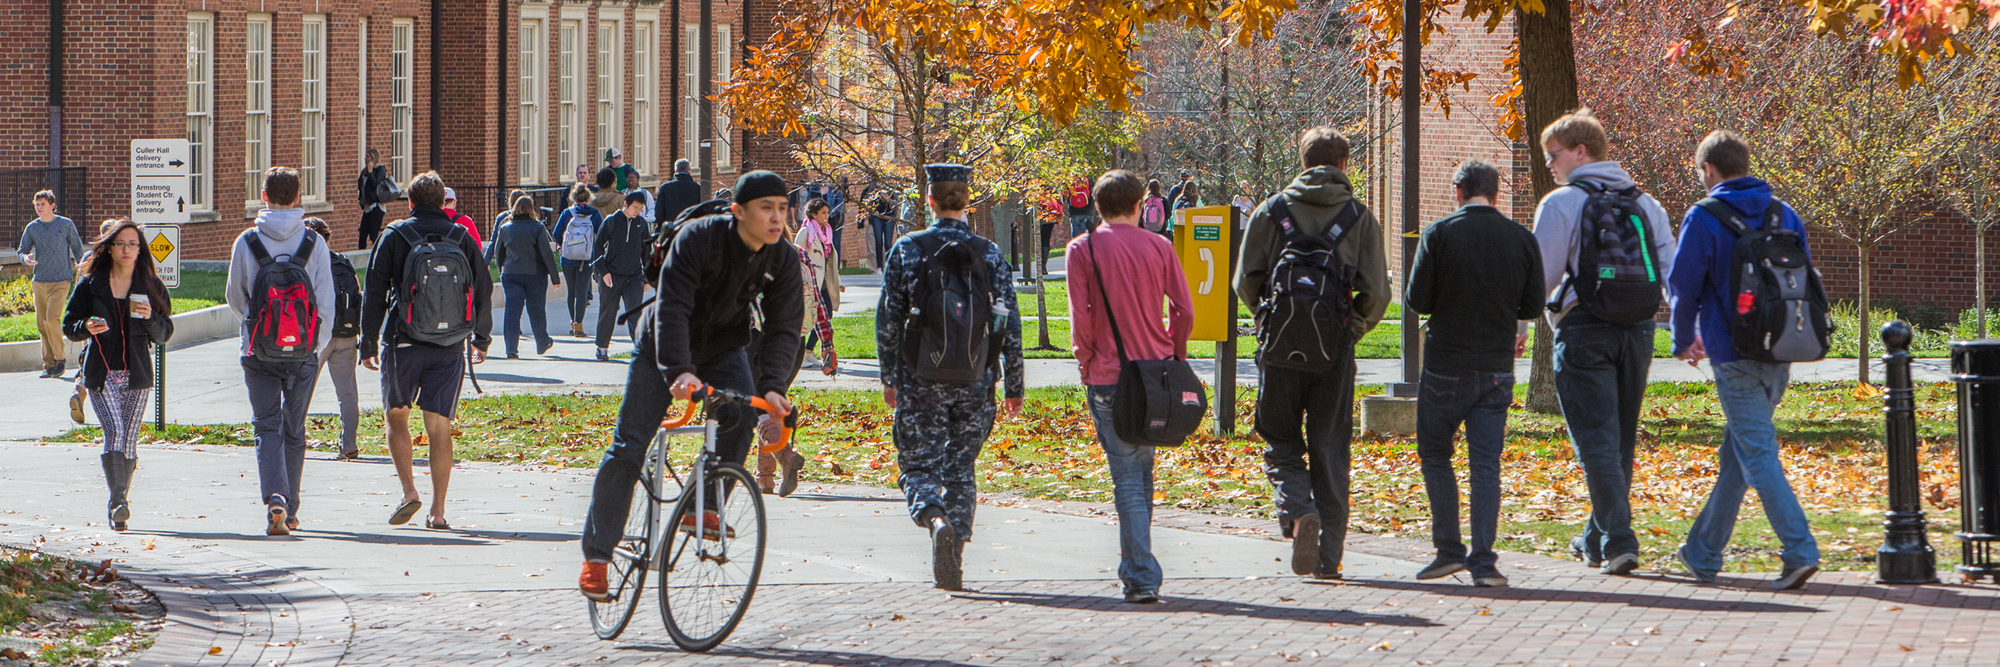 Students walking to and from various activities near Armstrong Student Center